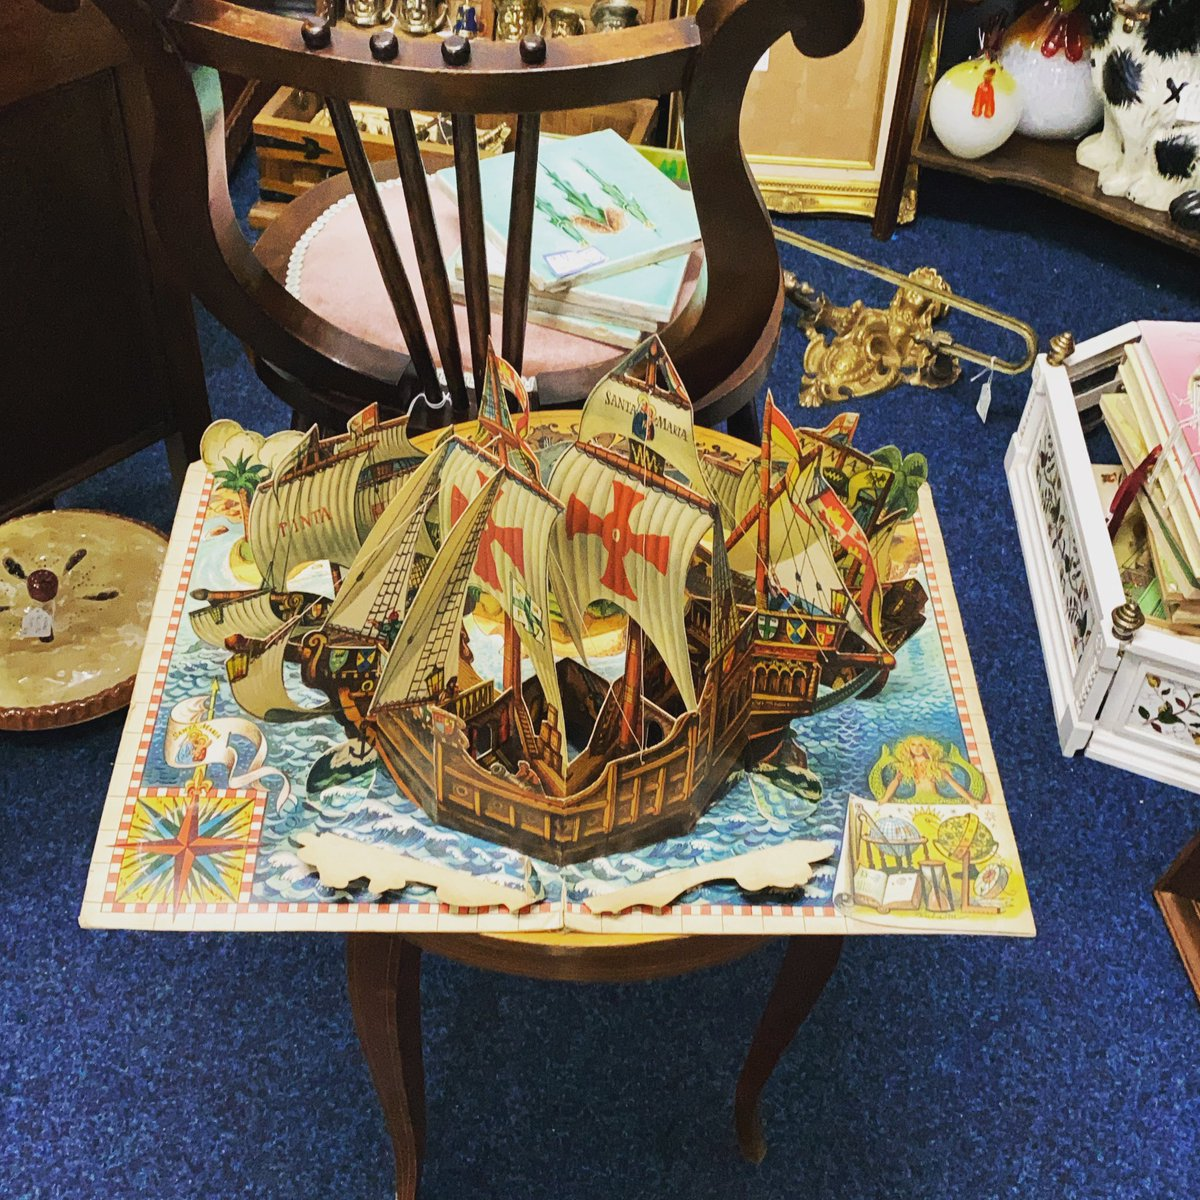 Look at this vintage Christopher Columbus pop up book one of our dealers has in. #popupbook #christophercolumbus #voyage #vintagetoys #astraantiquescentre #hemswell #lincolnshire https://t.co/TdPRVfCoJt